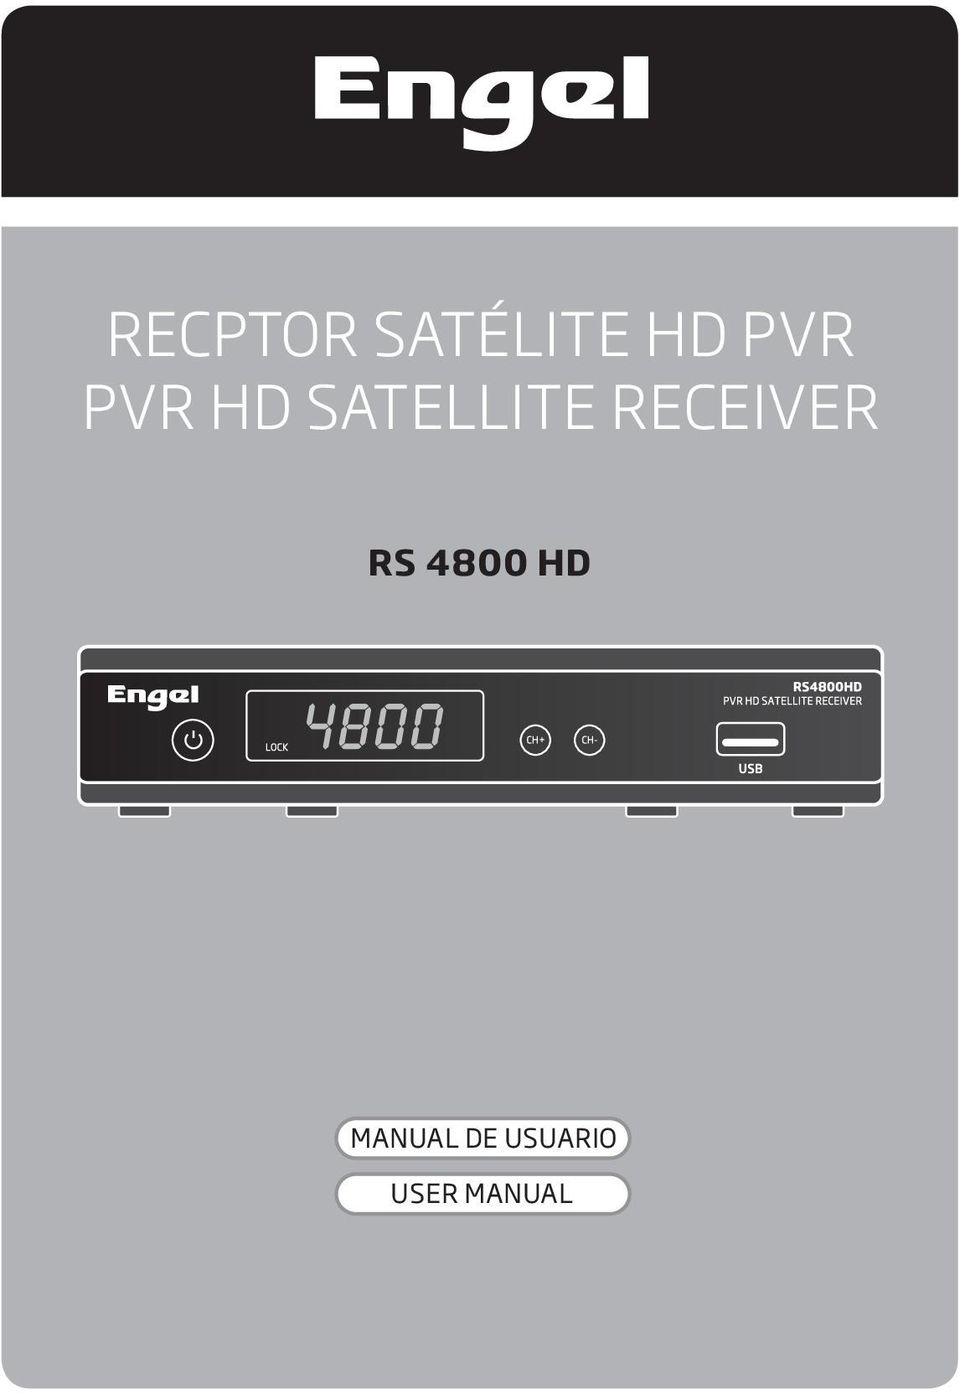 RECEIVER RS 4800 HD